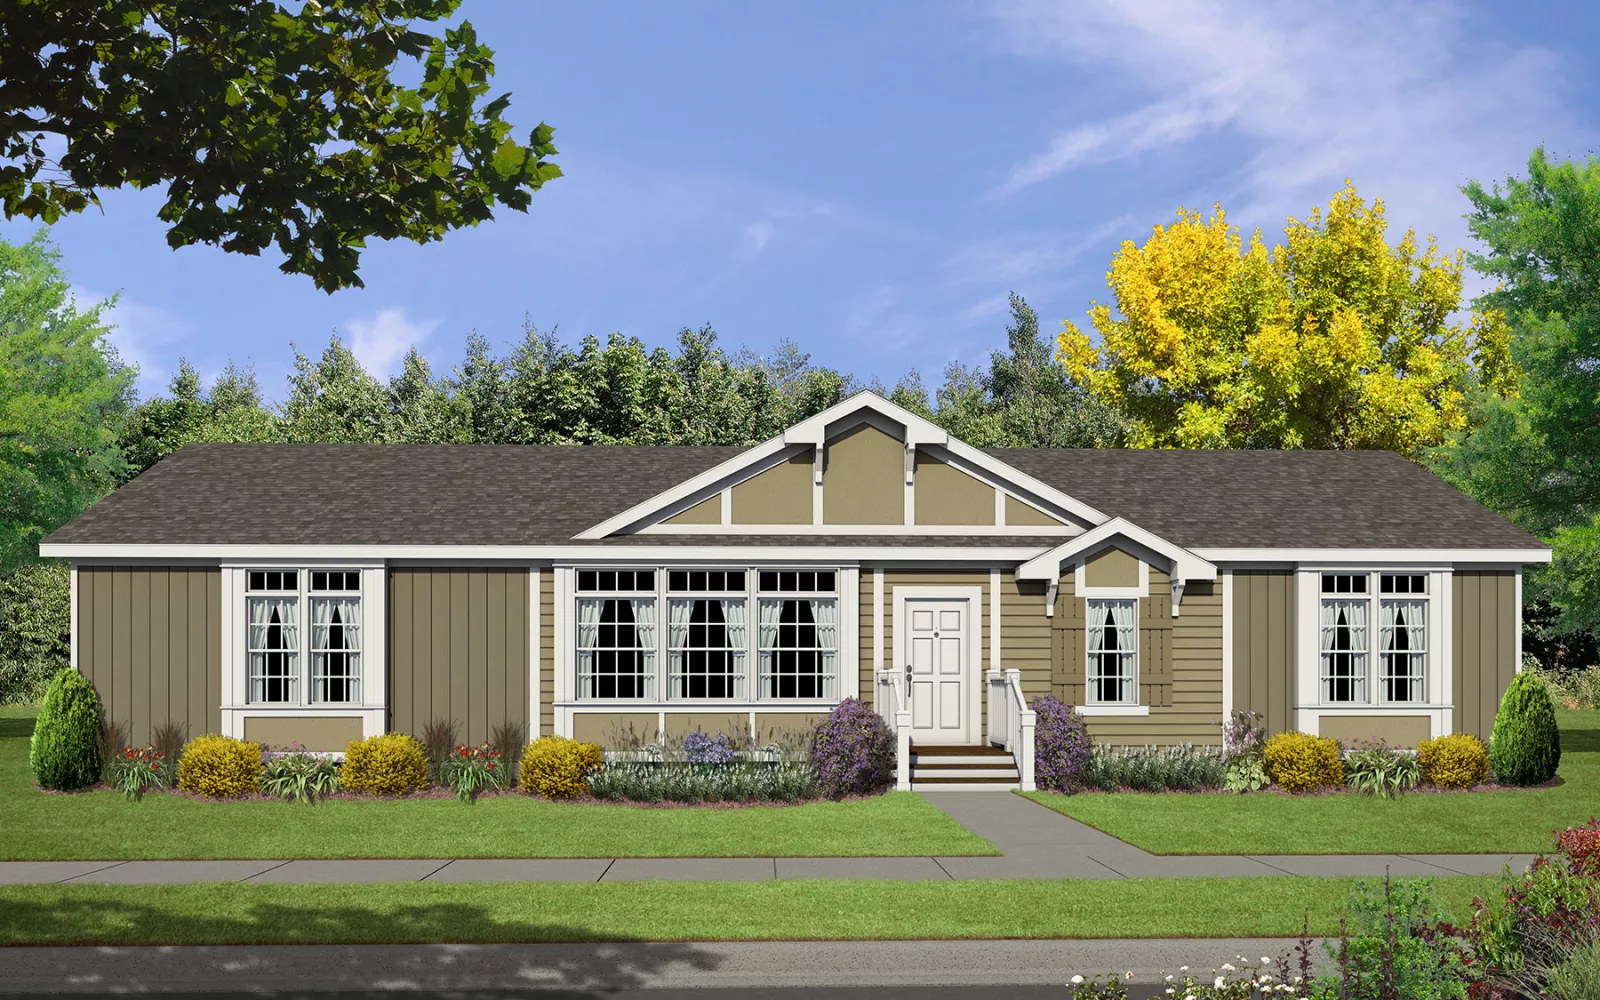 Image of the Champion Homes Avalanche 4663K exterior